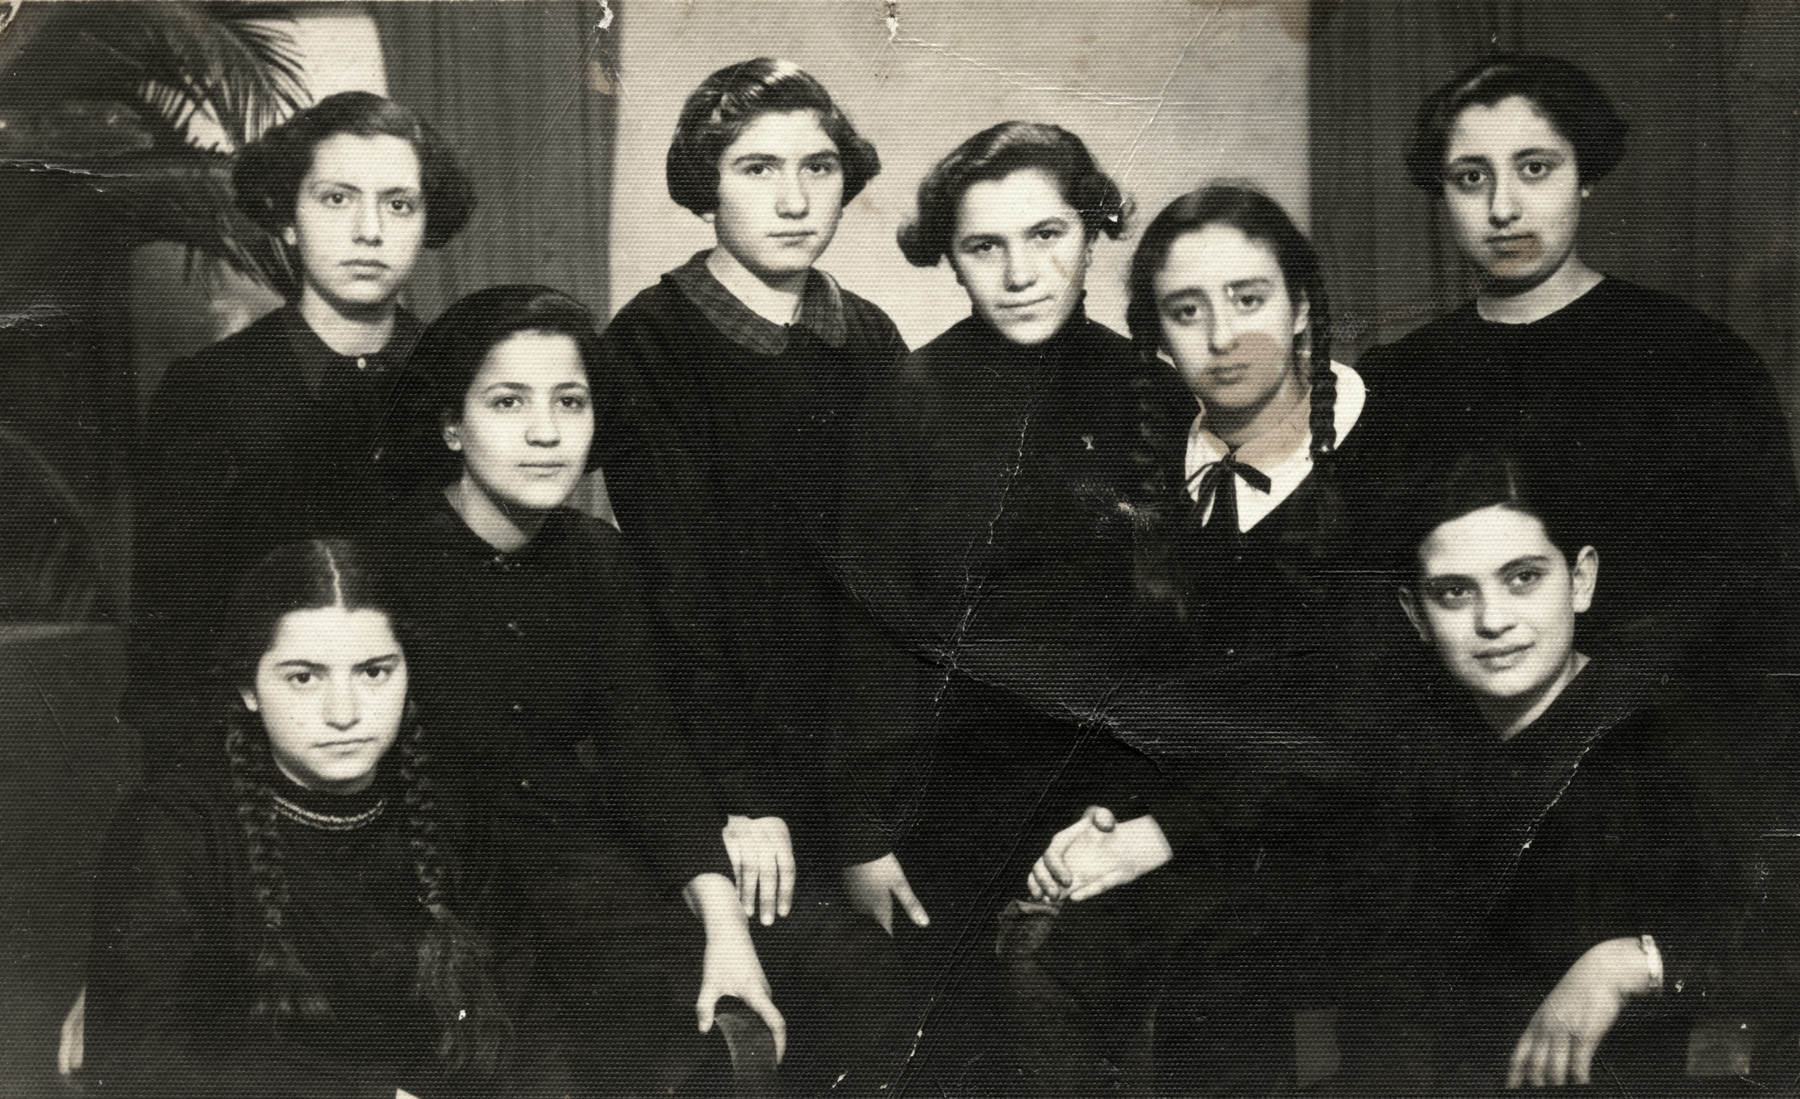 Group portrait of members of Plugat Dror group of the Betar movement in Sofia, Bulgaria.  The counselor, Sarika Levy (later Shulamith Shamir) is third from the left on the top row.  Dora Levy is on the far left, top row.